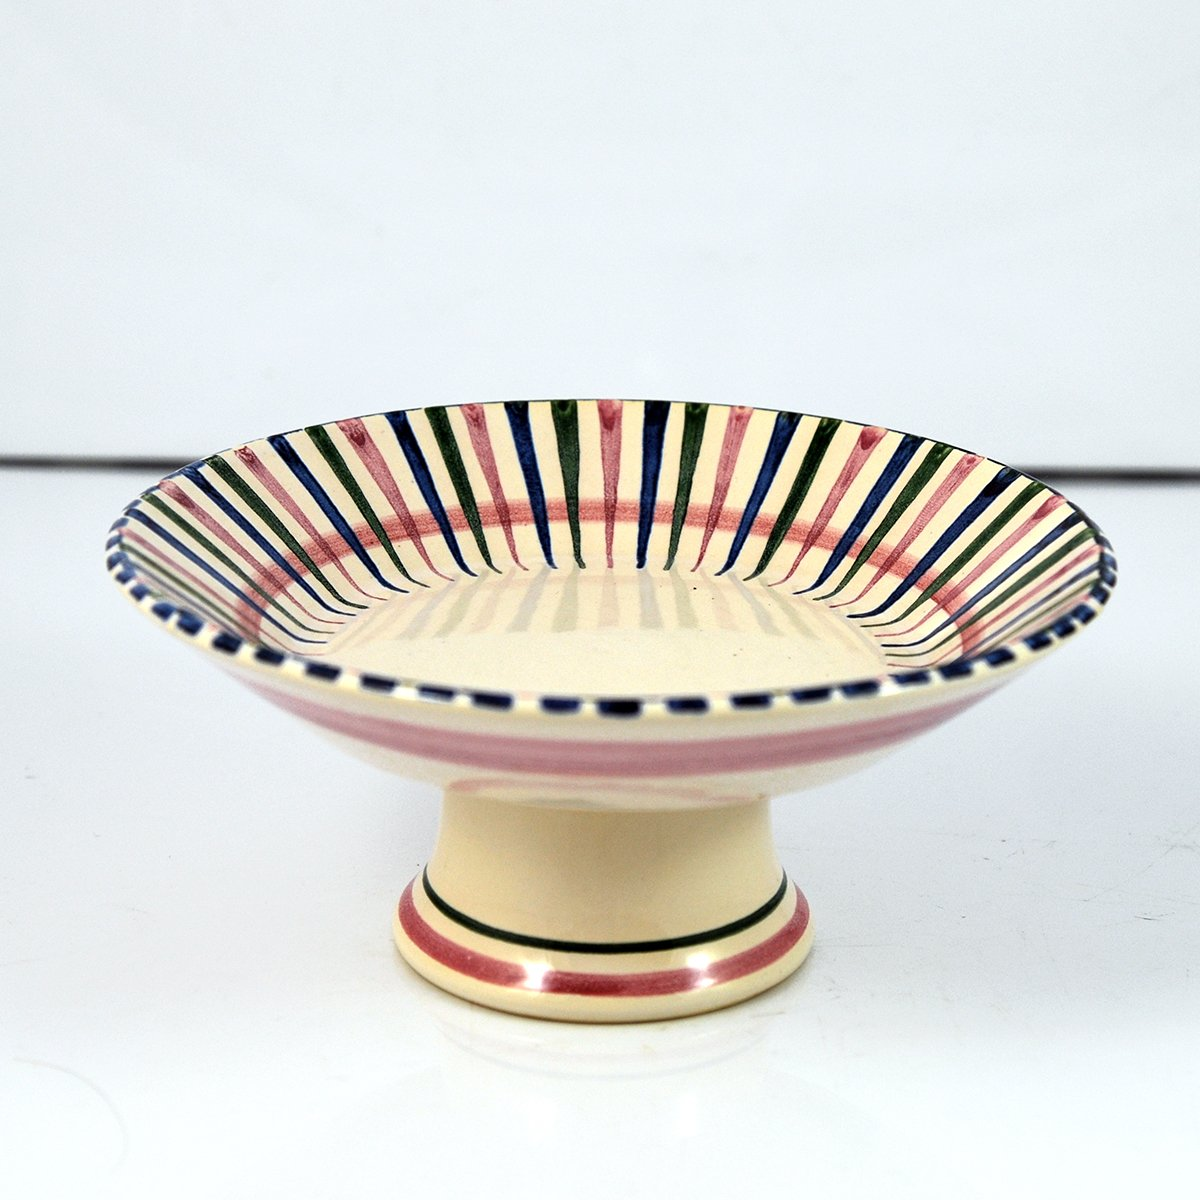 Hedwig Bollhagen ceramic cake stand by hedwig bollhagen 1960s for sale at pamono